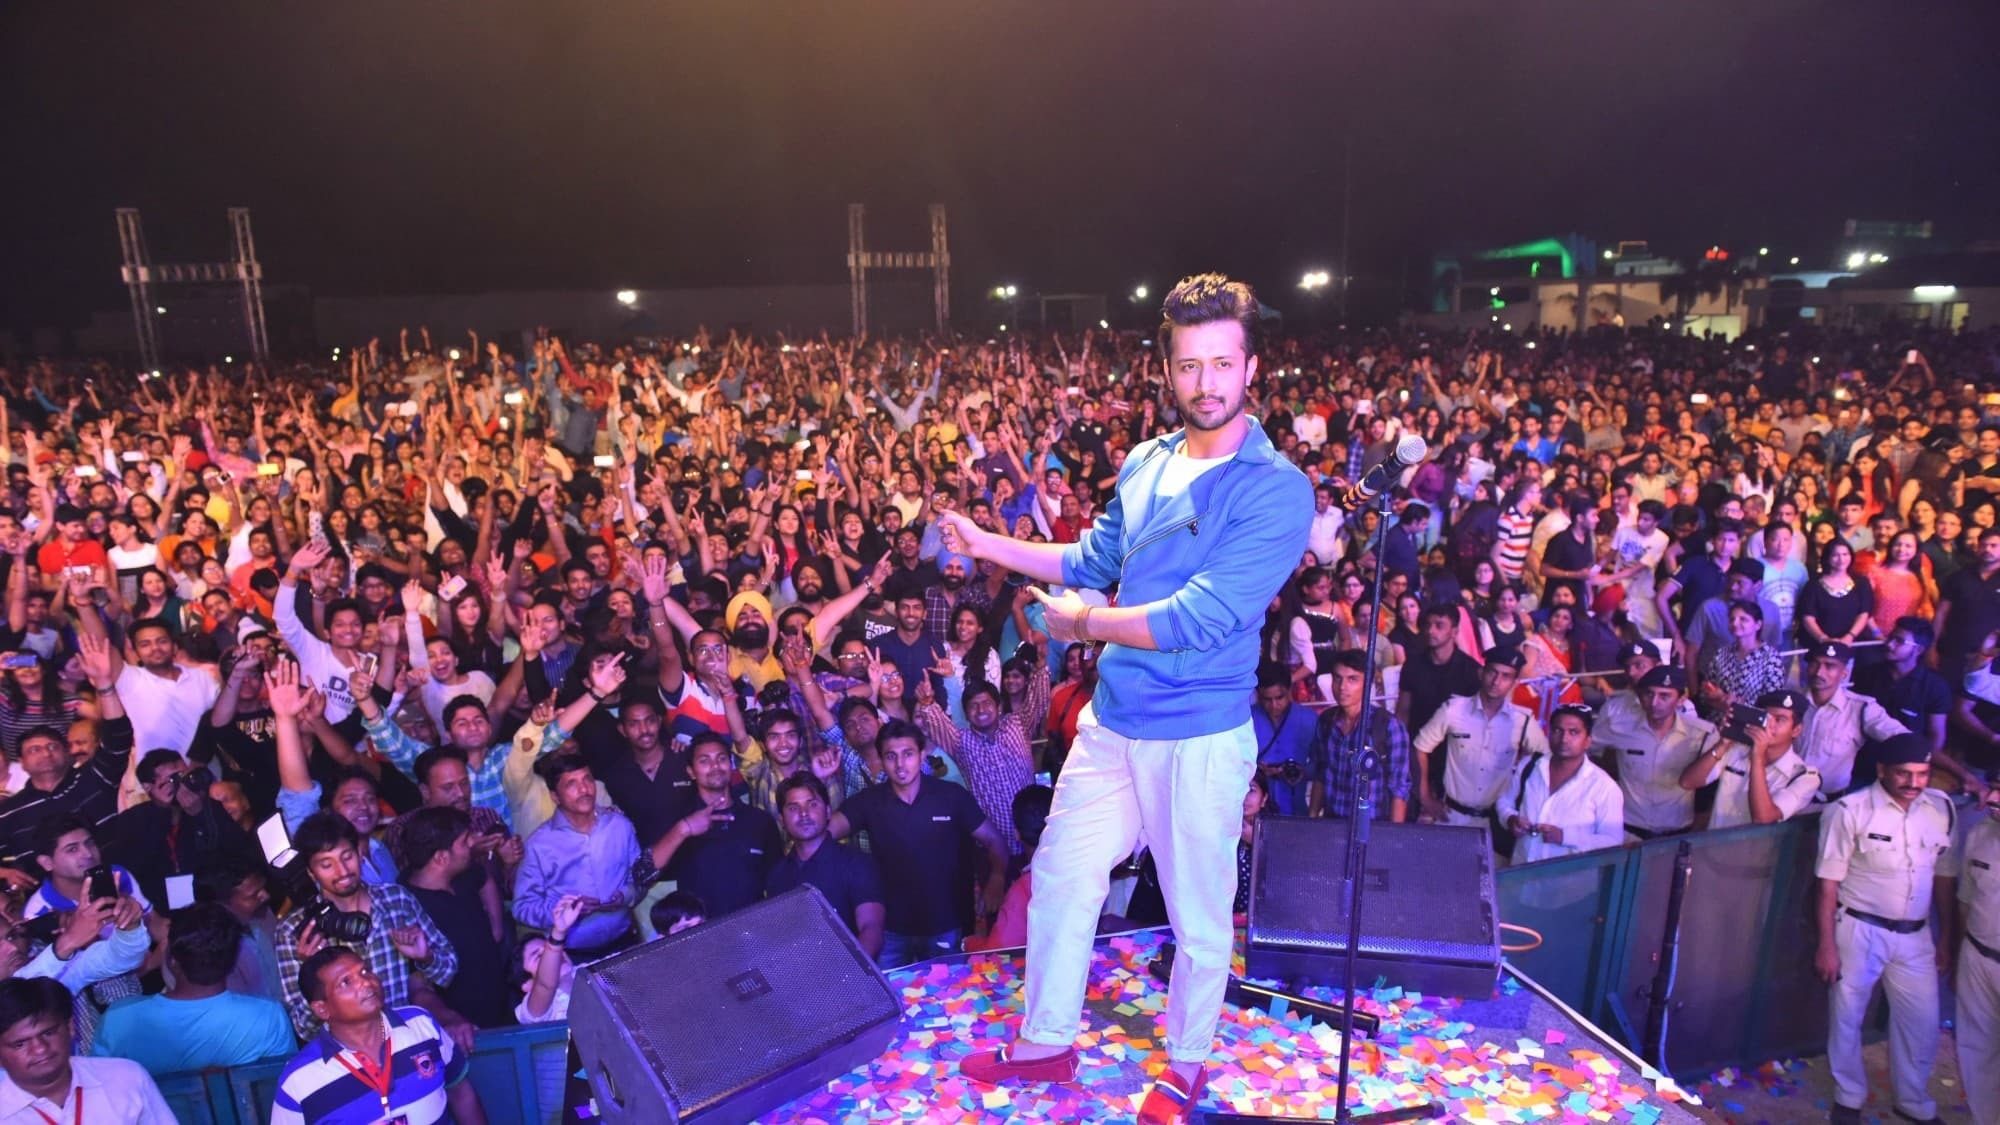 Atif Aslam, Karachi Eat, the woman in the back row and the lies we tell ourselves